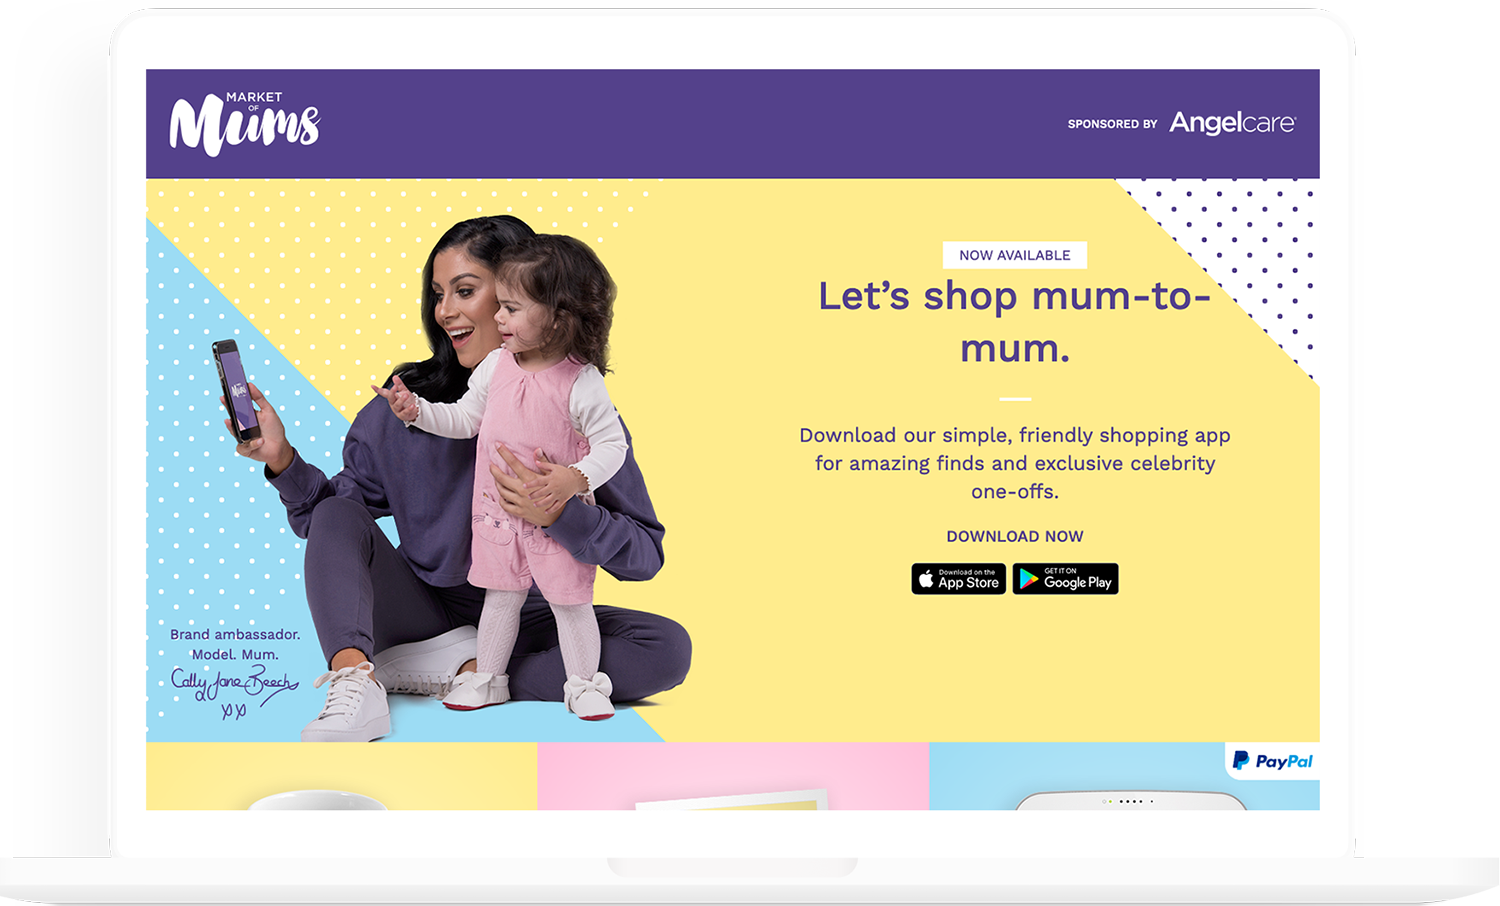 A screenshot of the Market of Mums marketing website